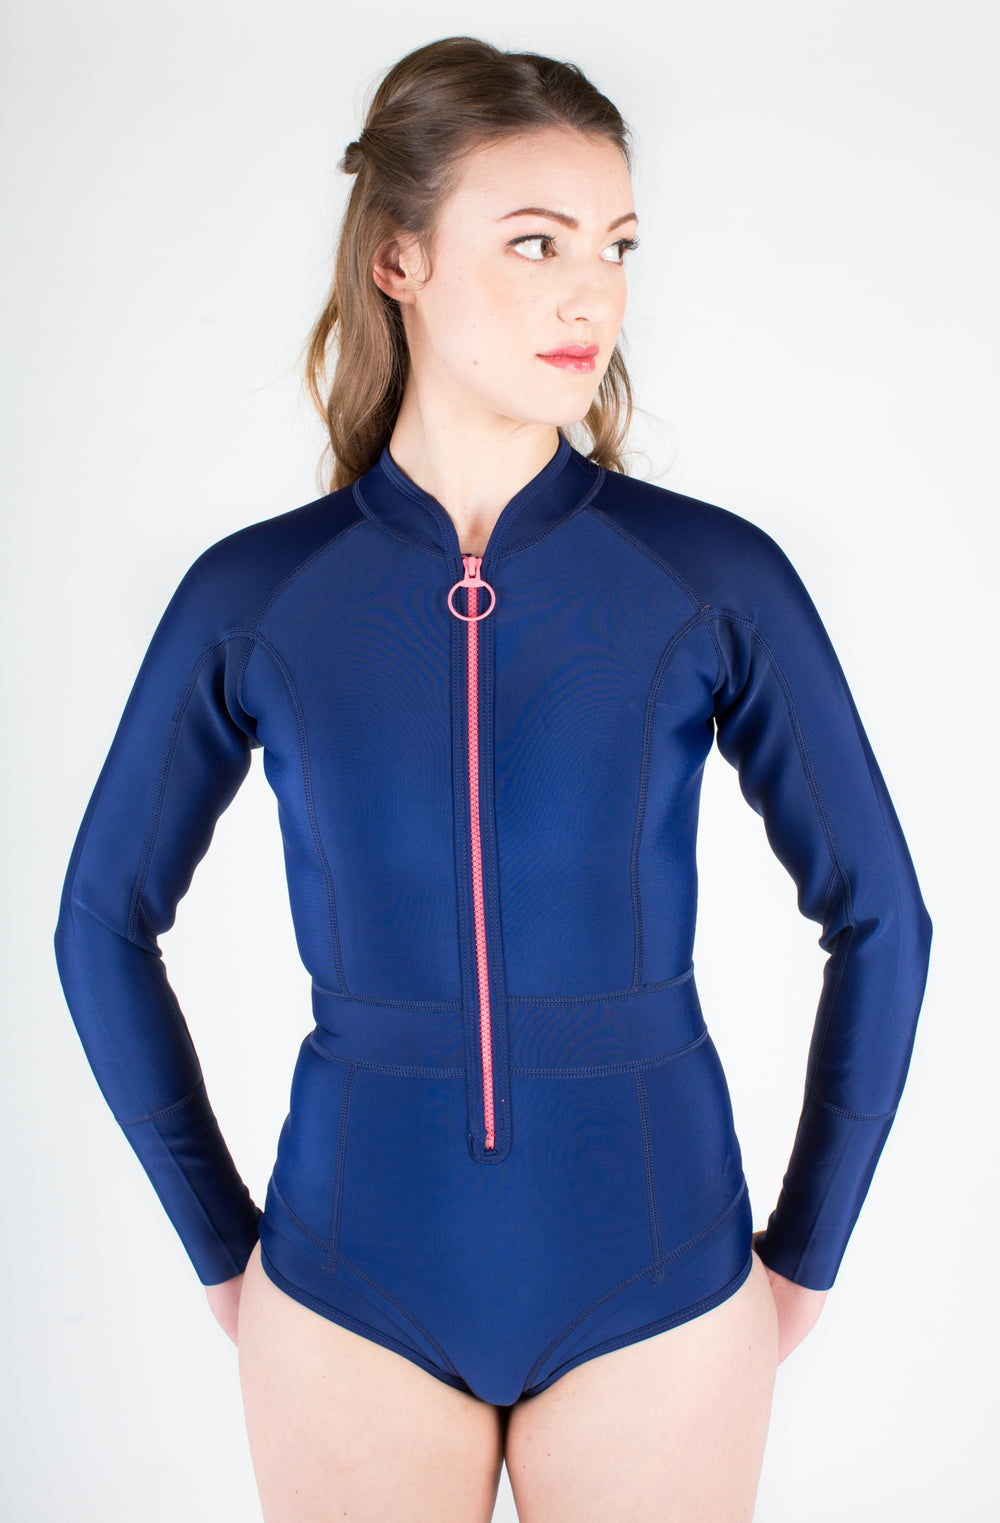 DUSKII Gisele Long-Sleeved Springsuit in Blueberry